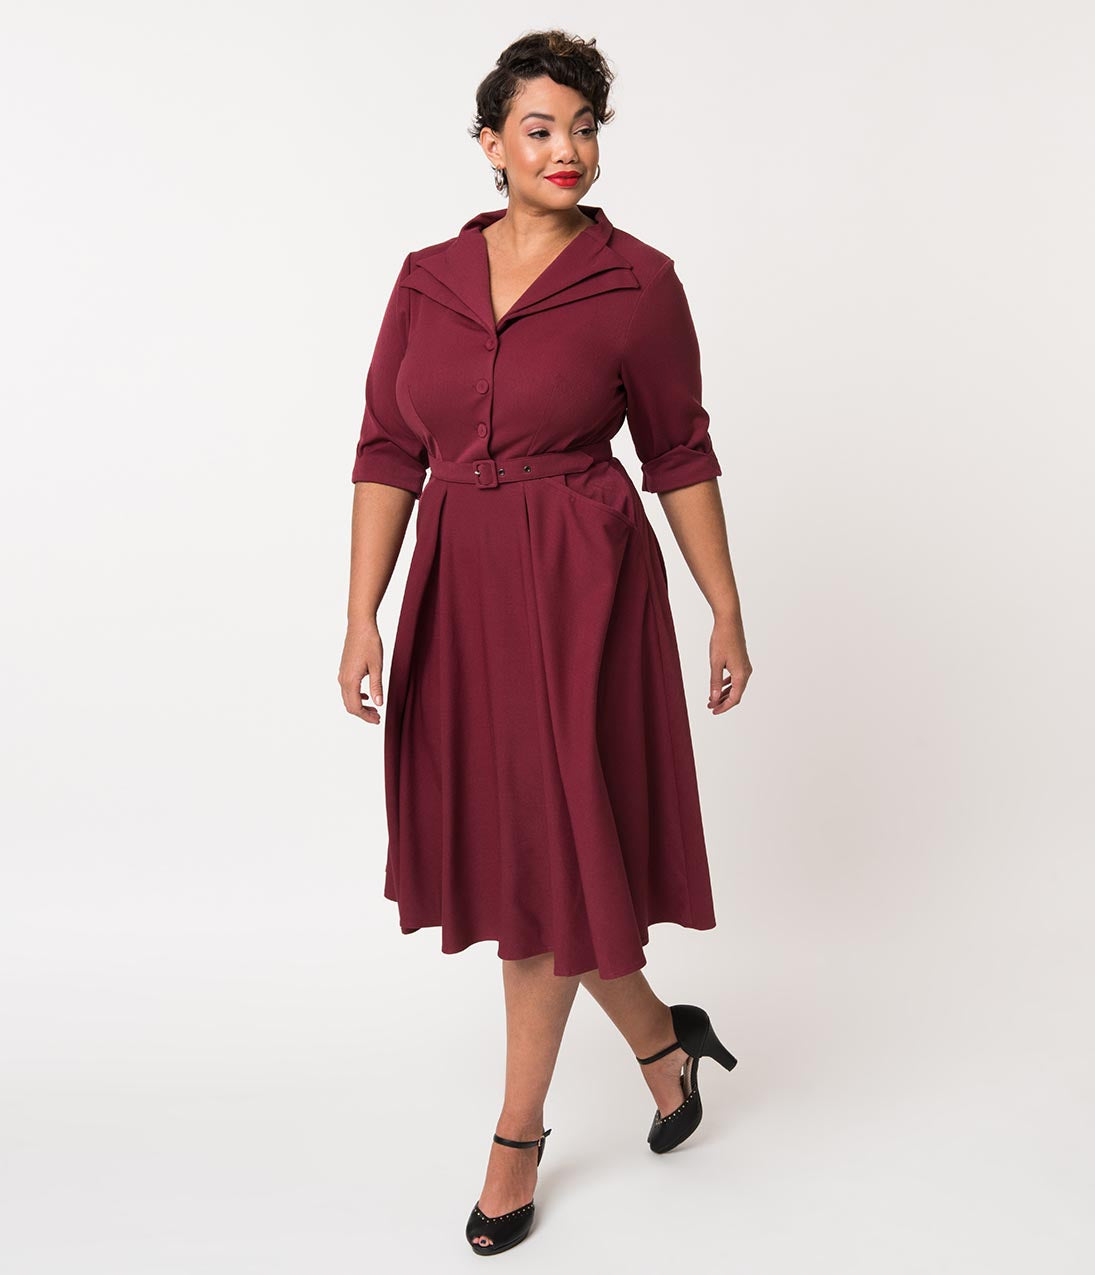 1950s Dresses, 50s Dresses | 1950s Style Dresses Miss Candyfloss Plus Size 1940S Wine Sleeved Davignon Swing Dress $138.00 AT vintagedancer.com